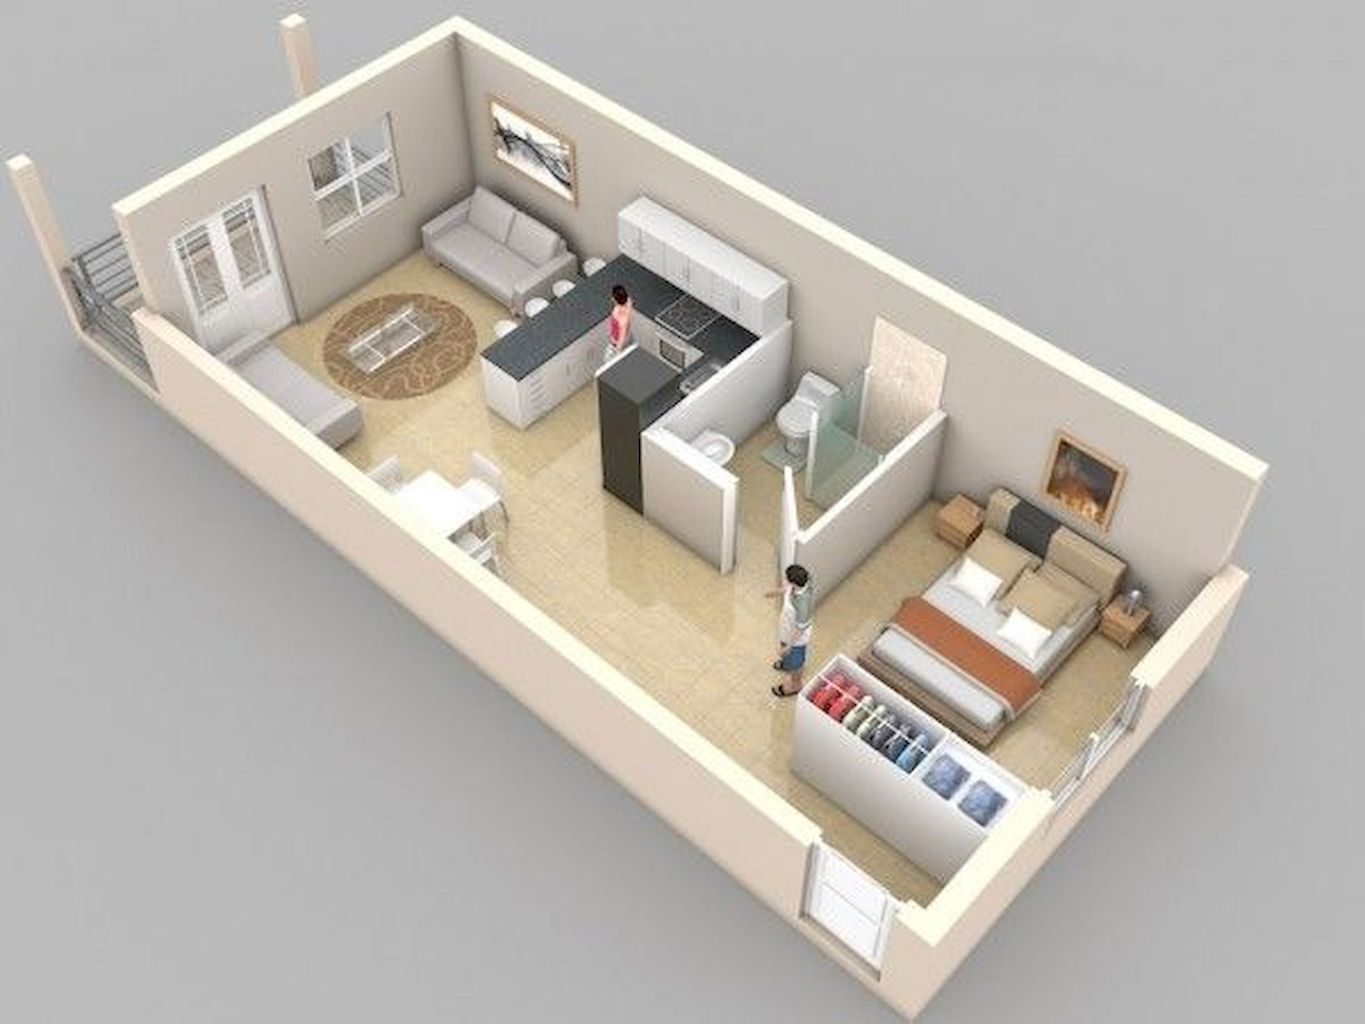 Small Studio Apartment Layout Design Ideas 1 Home Design Studio Apartment Floor Plans Apartment Floor Plans Bedroom Floor Plans